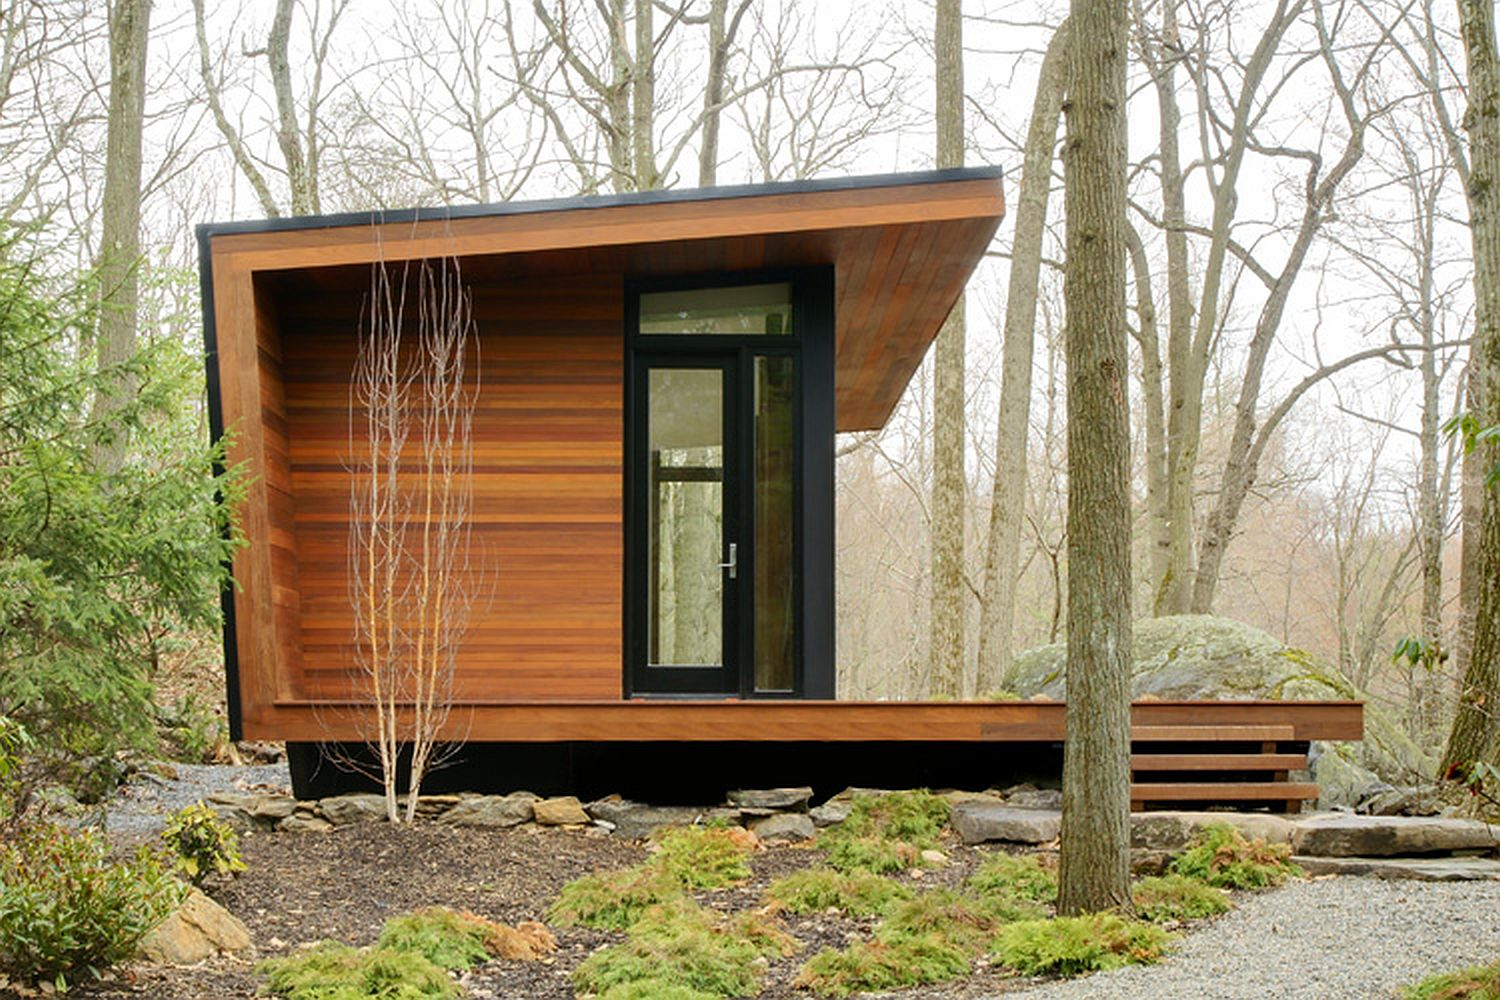 Gallery a modern studio retreat in the woods workshop apd small house bliss - Wooden vacation houses nature style ...